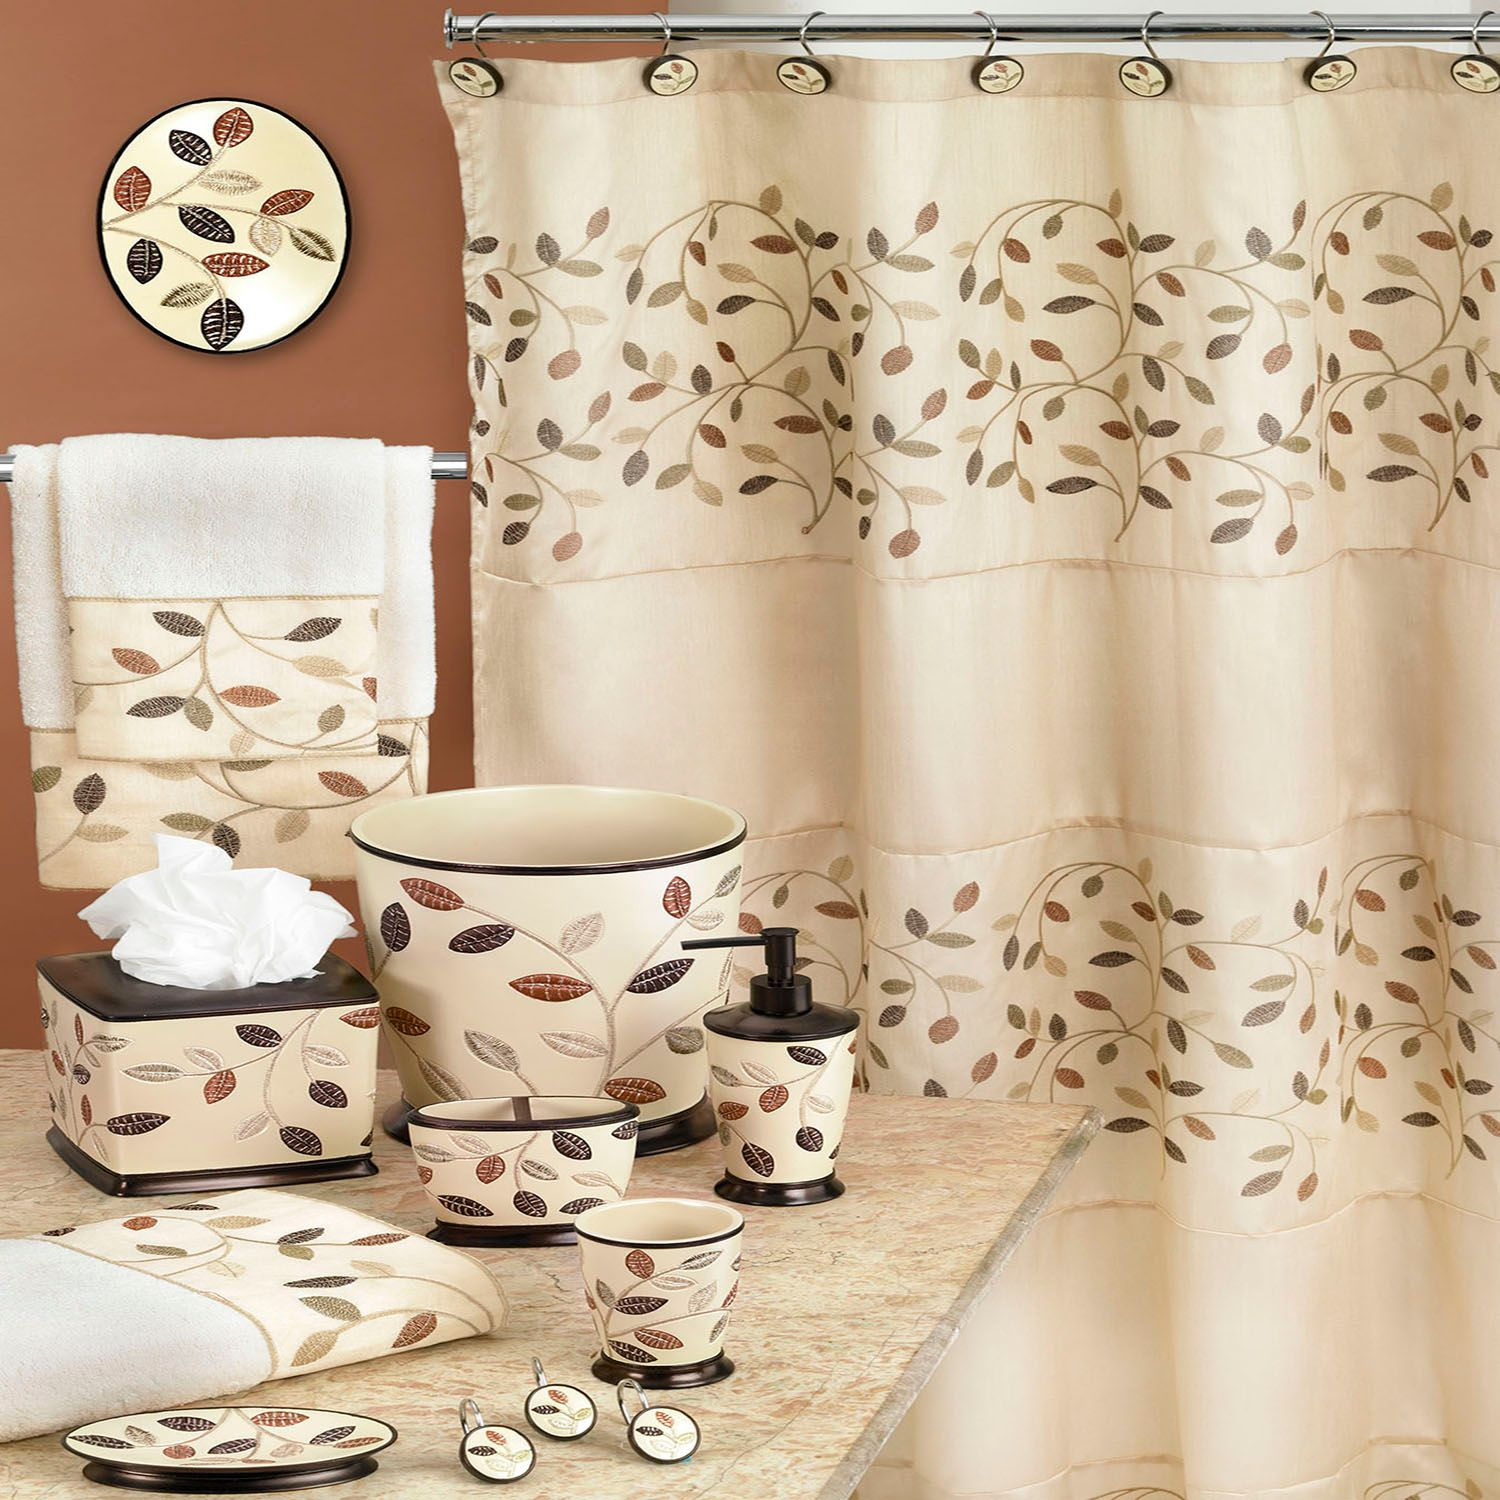 Aubury Bathroom Accessories Collection